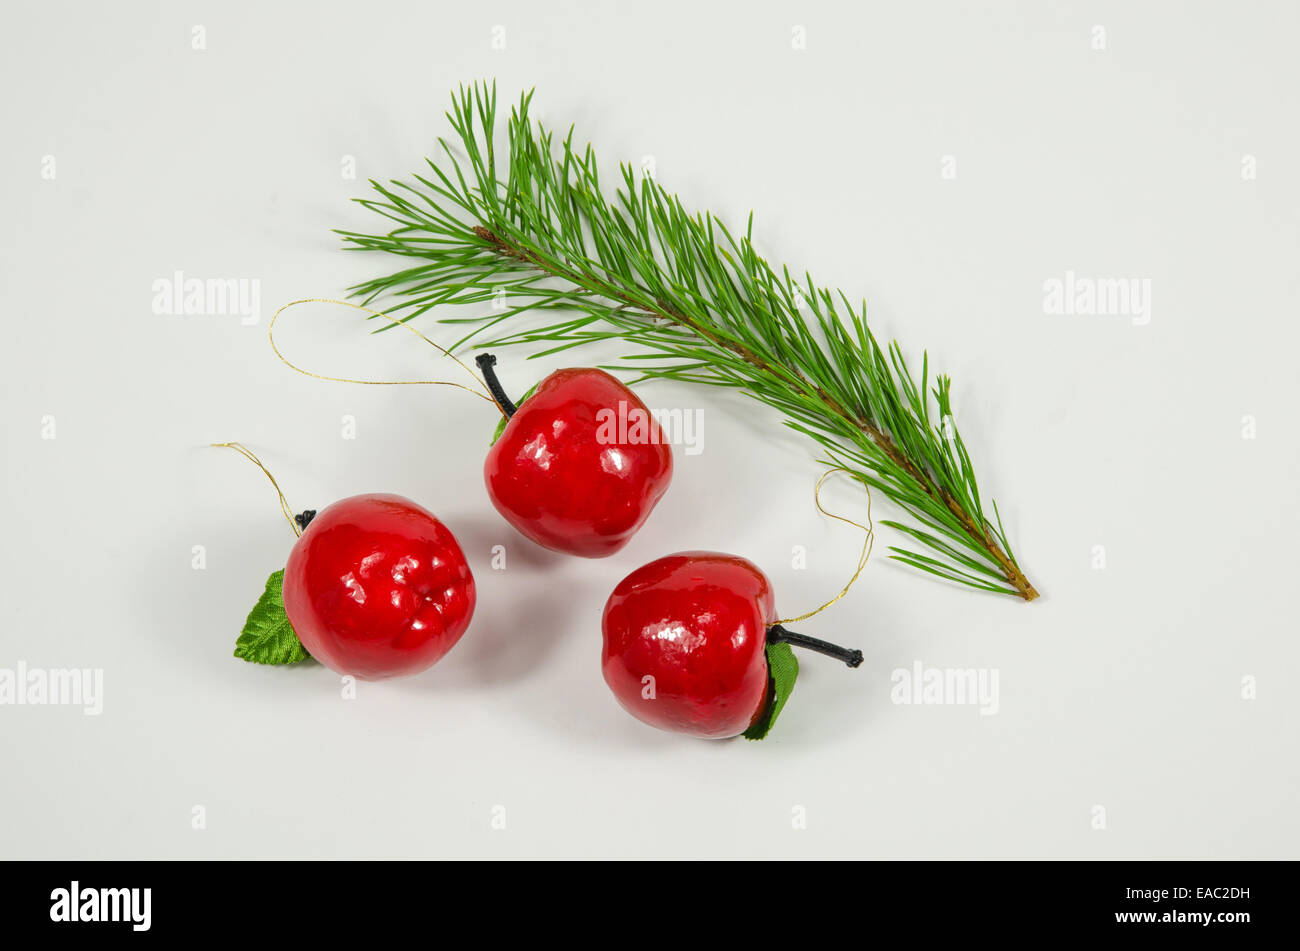 Christmas decorations of red apples and a green pine tree twig - Stock Image